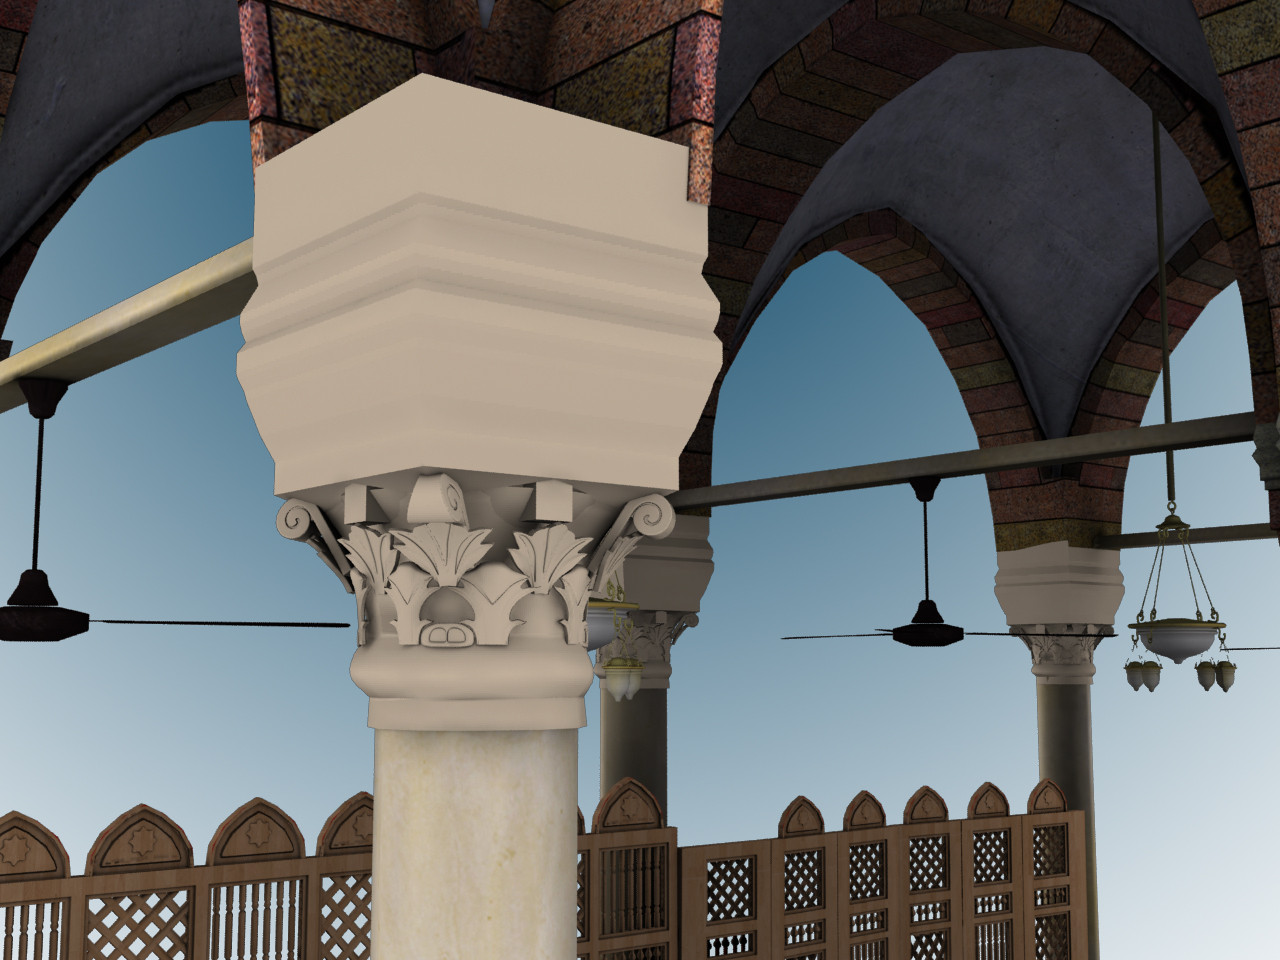 mecca 3d model from point cloud